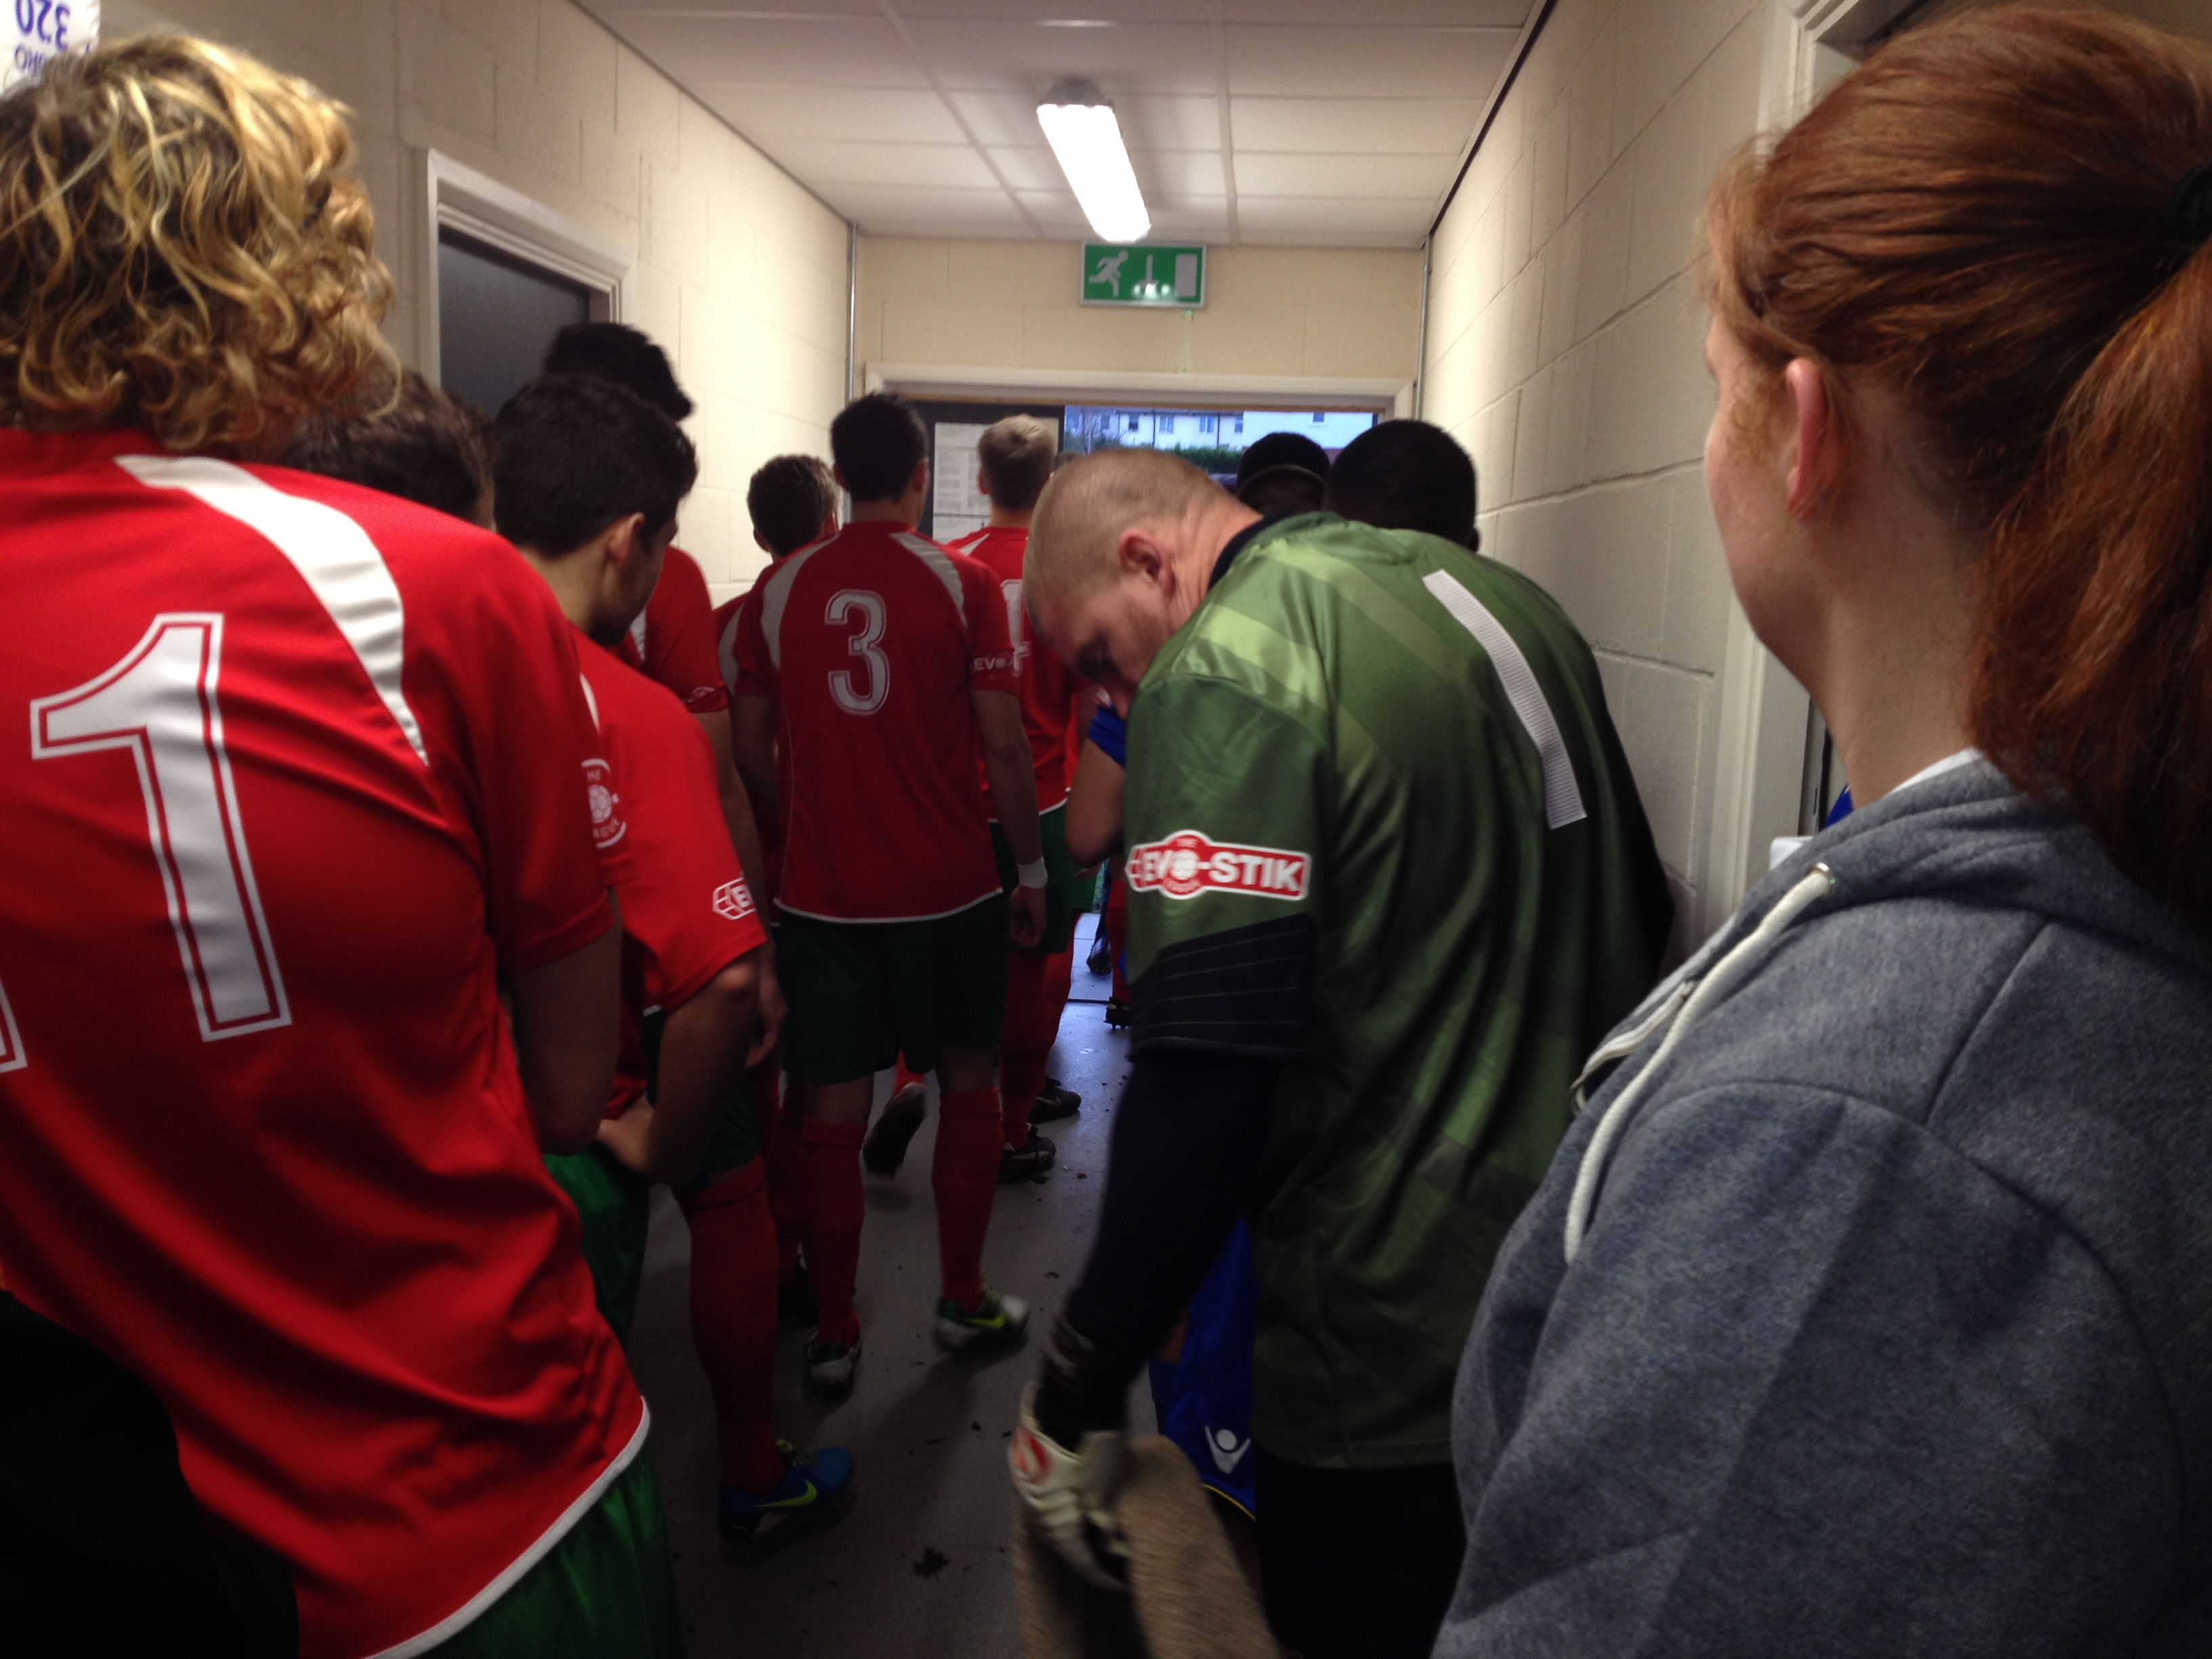 Ready for battle: The two teams in the tunnel